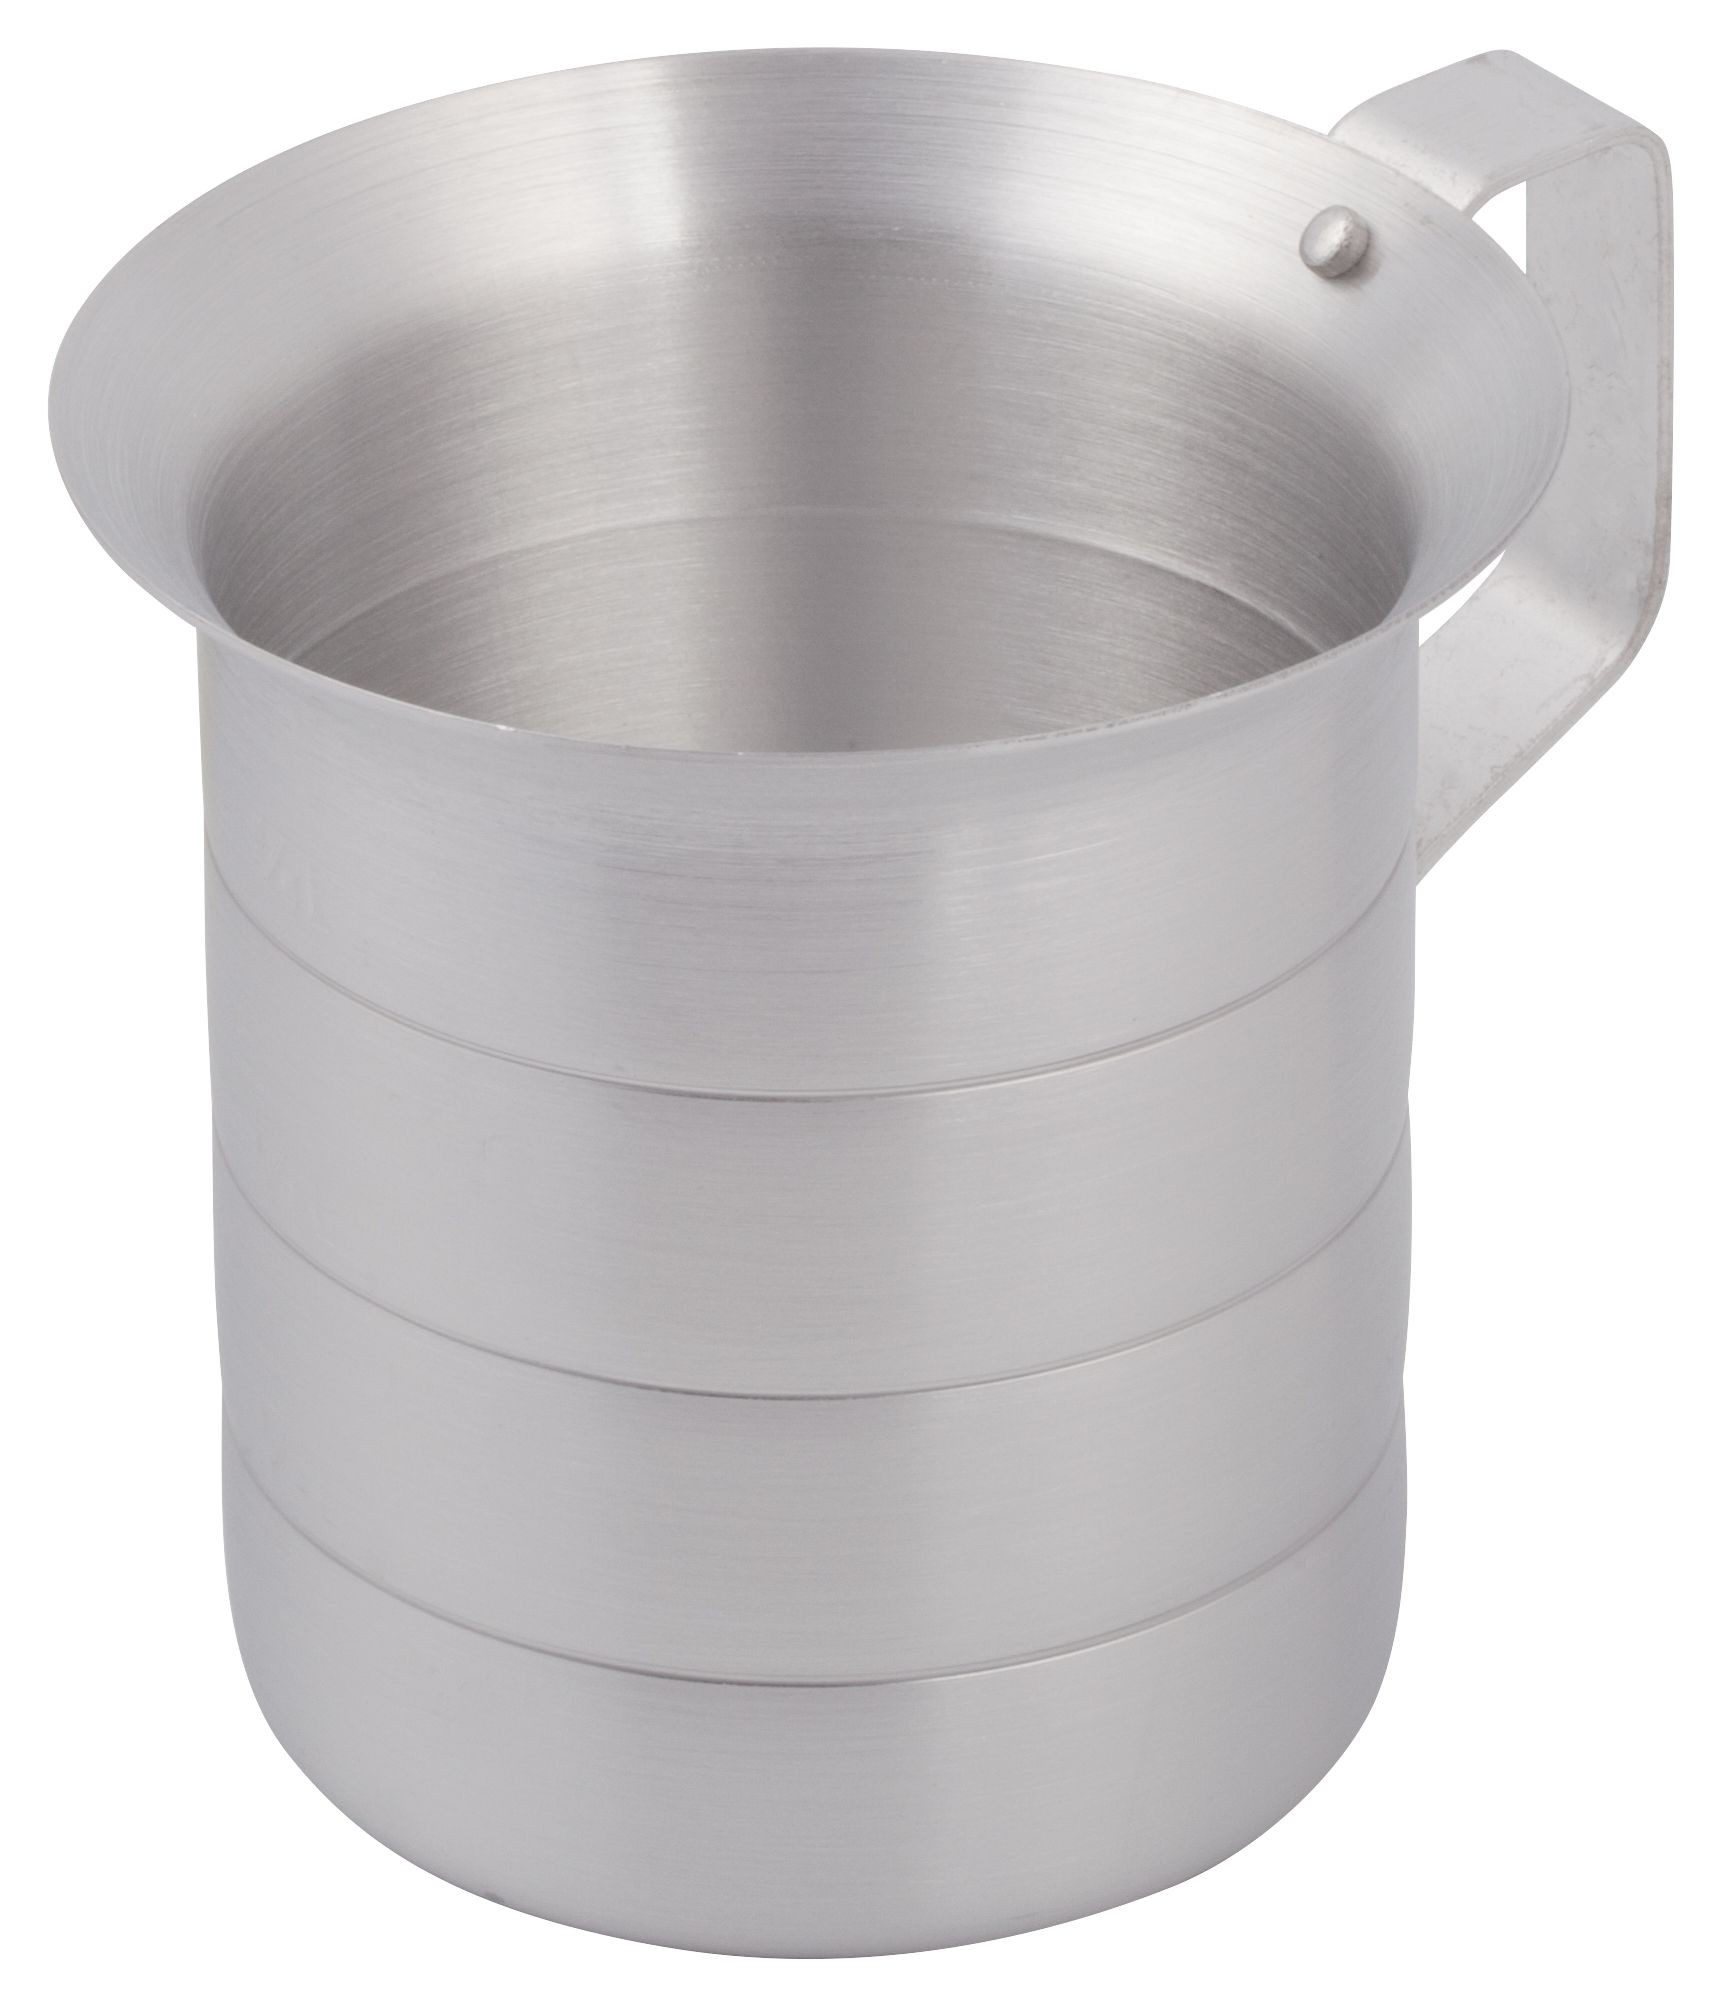 Aluminum Measuring Cup, 1 Quart